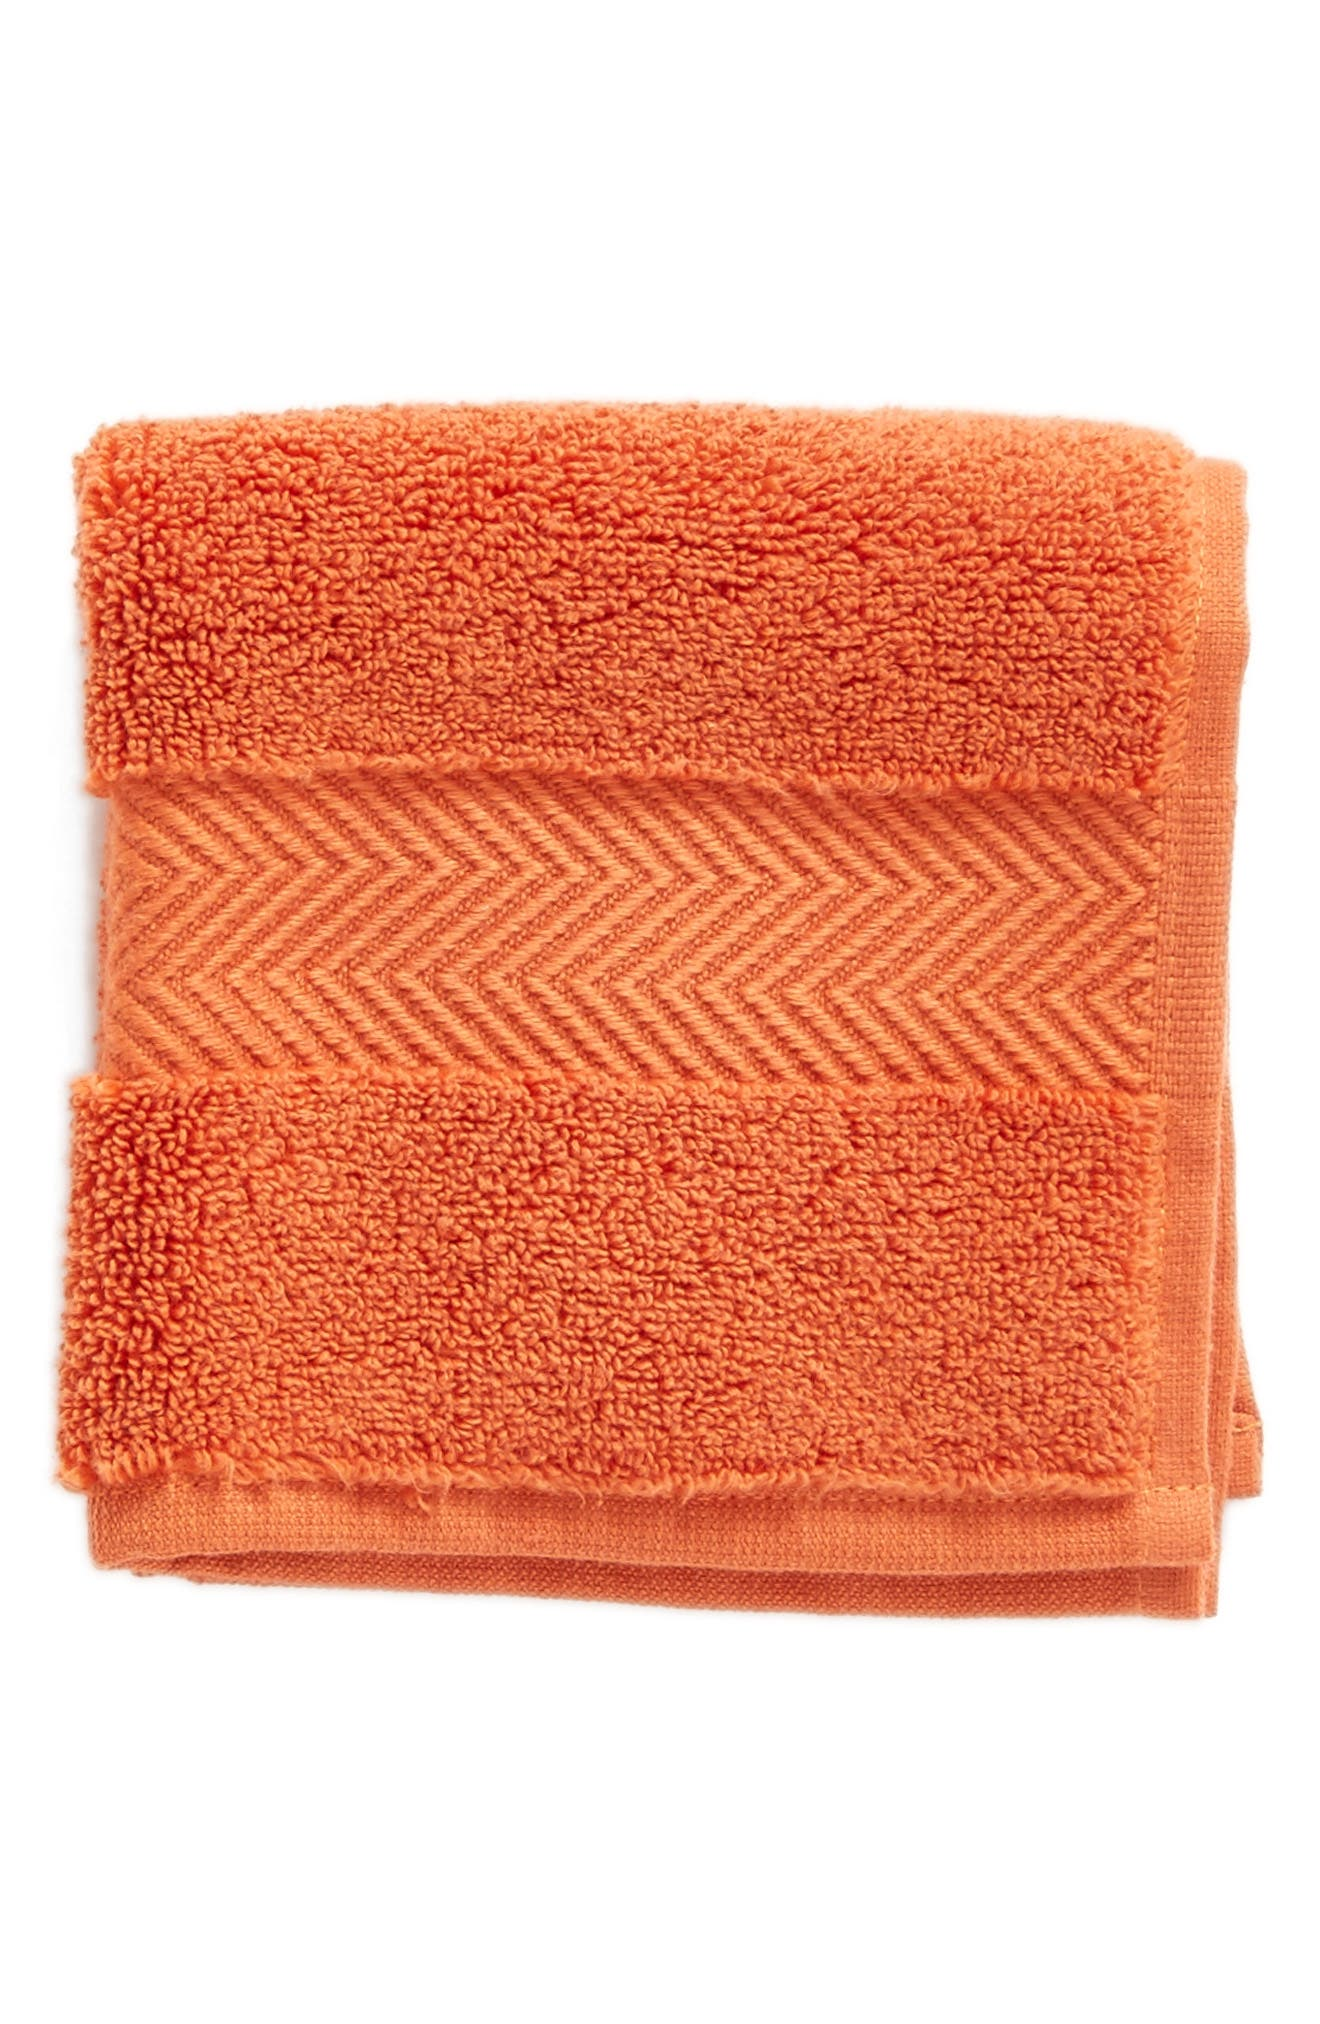 Hydrocotton Washcloth,                             Alternate thumbnail 87, color,